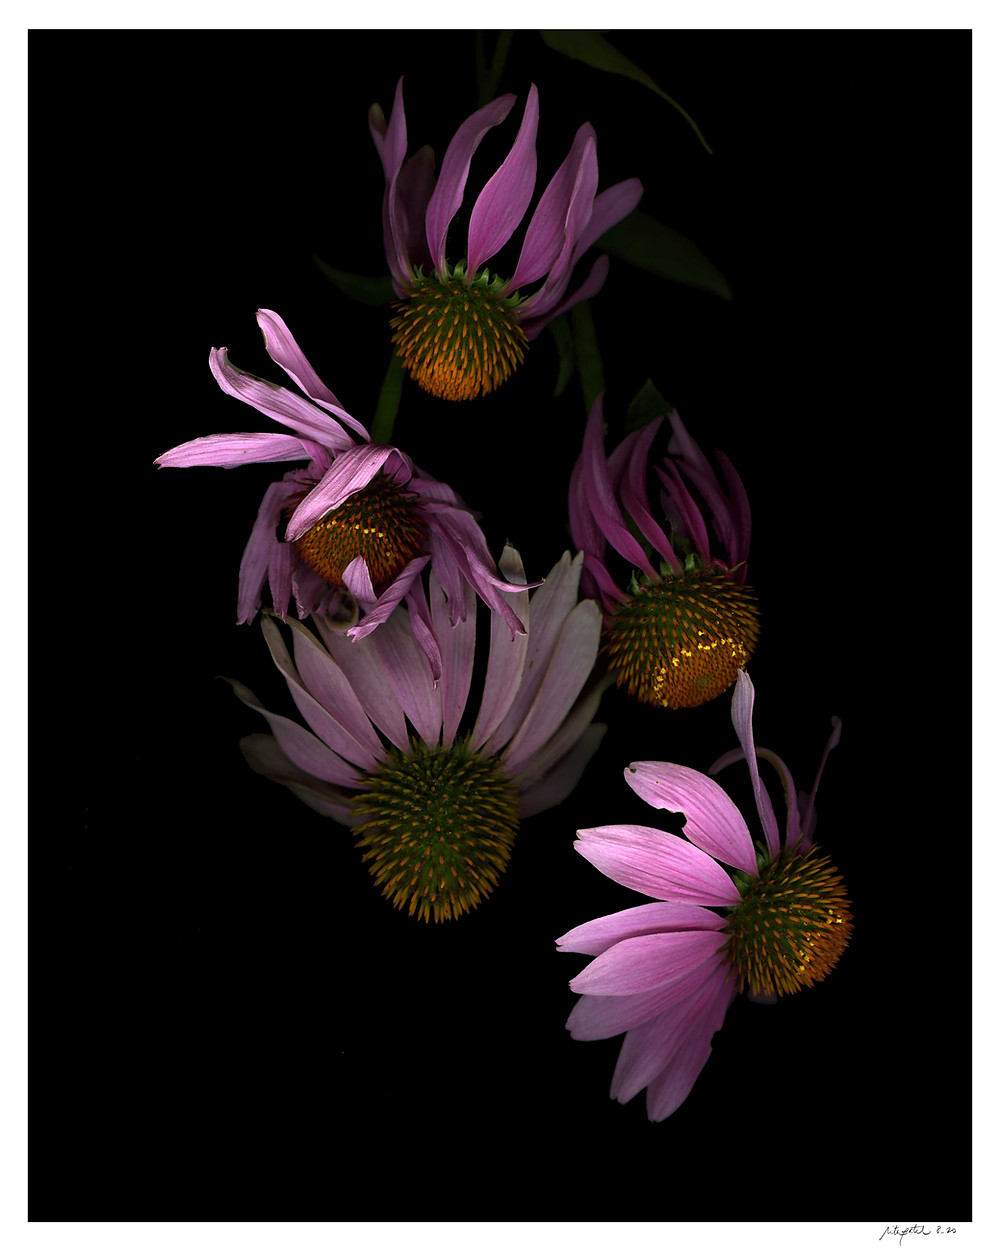 floating echinacea - flower photography sold as prints by Rita G. Patel